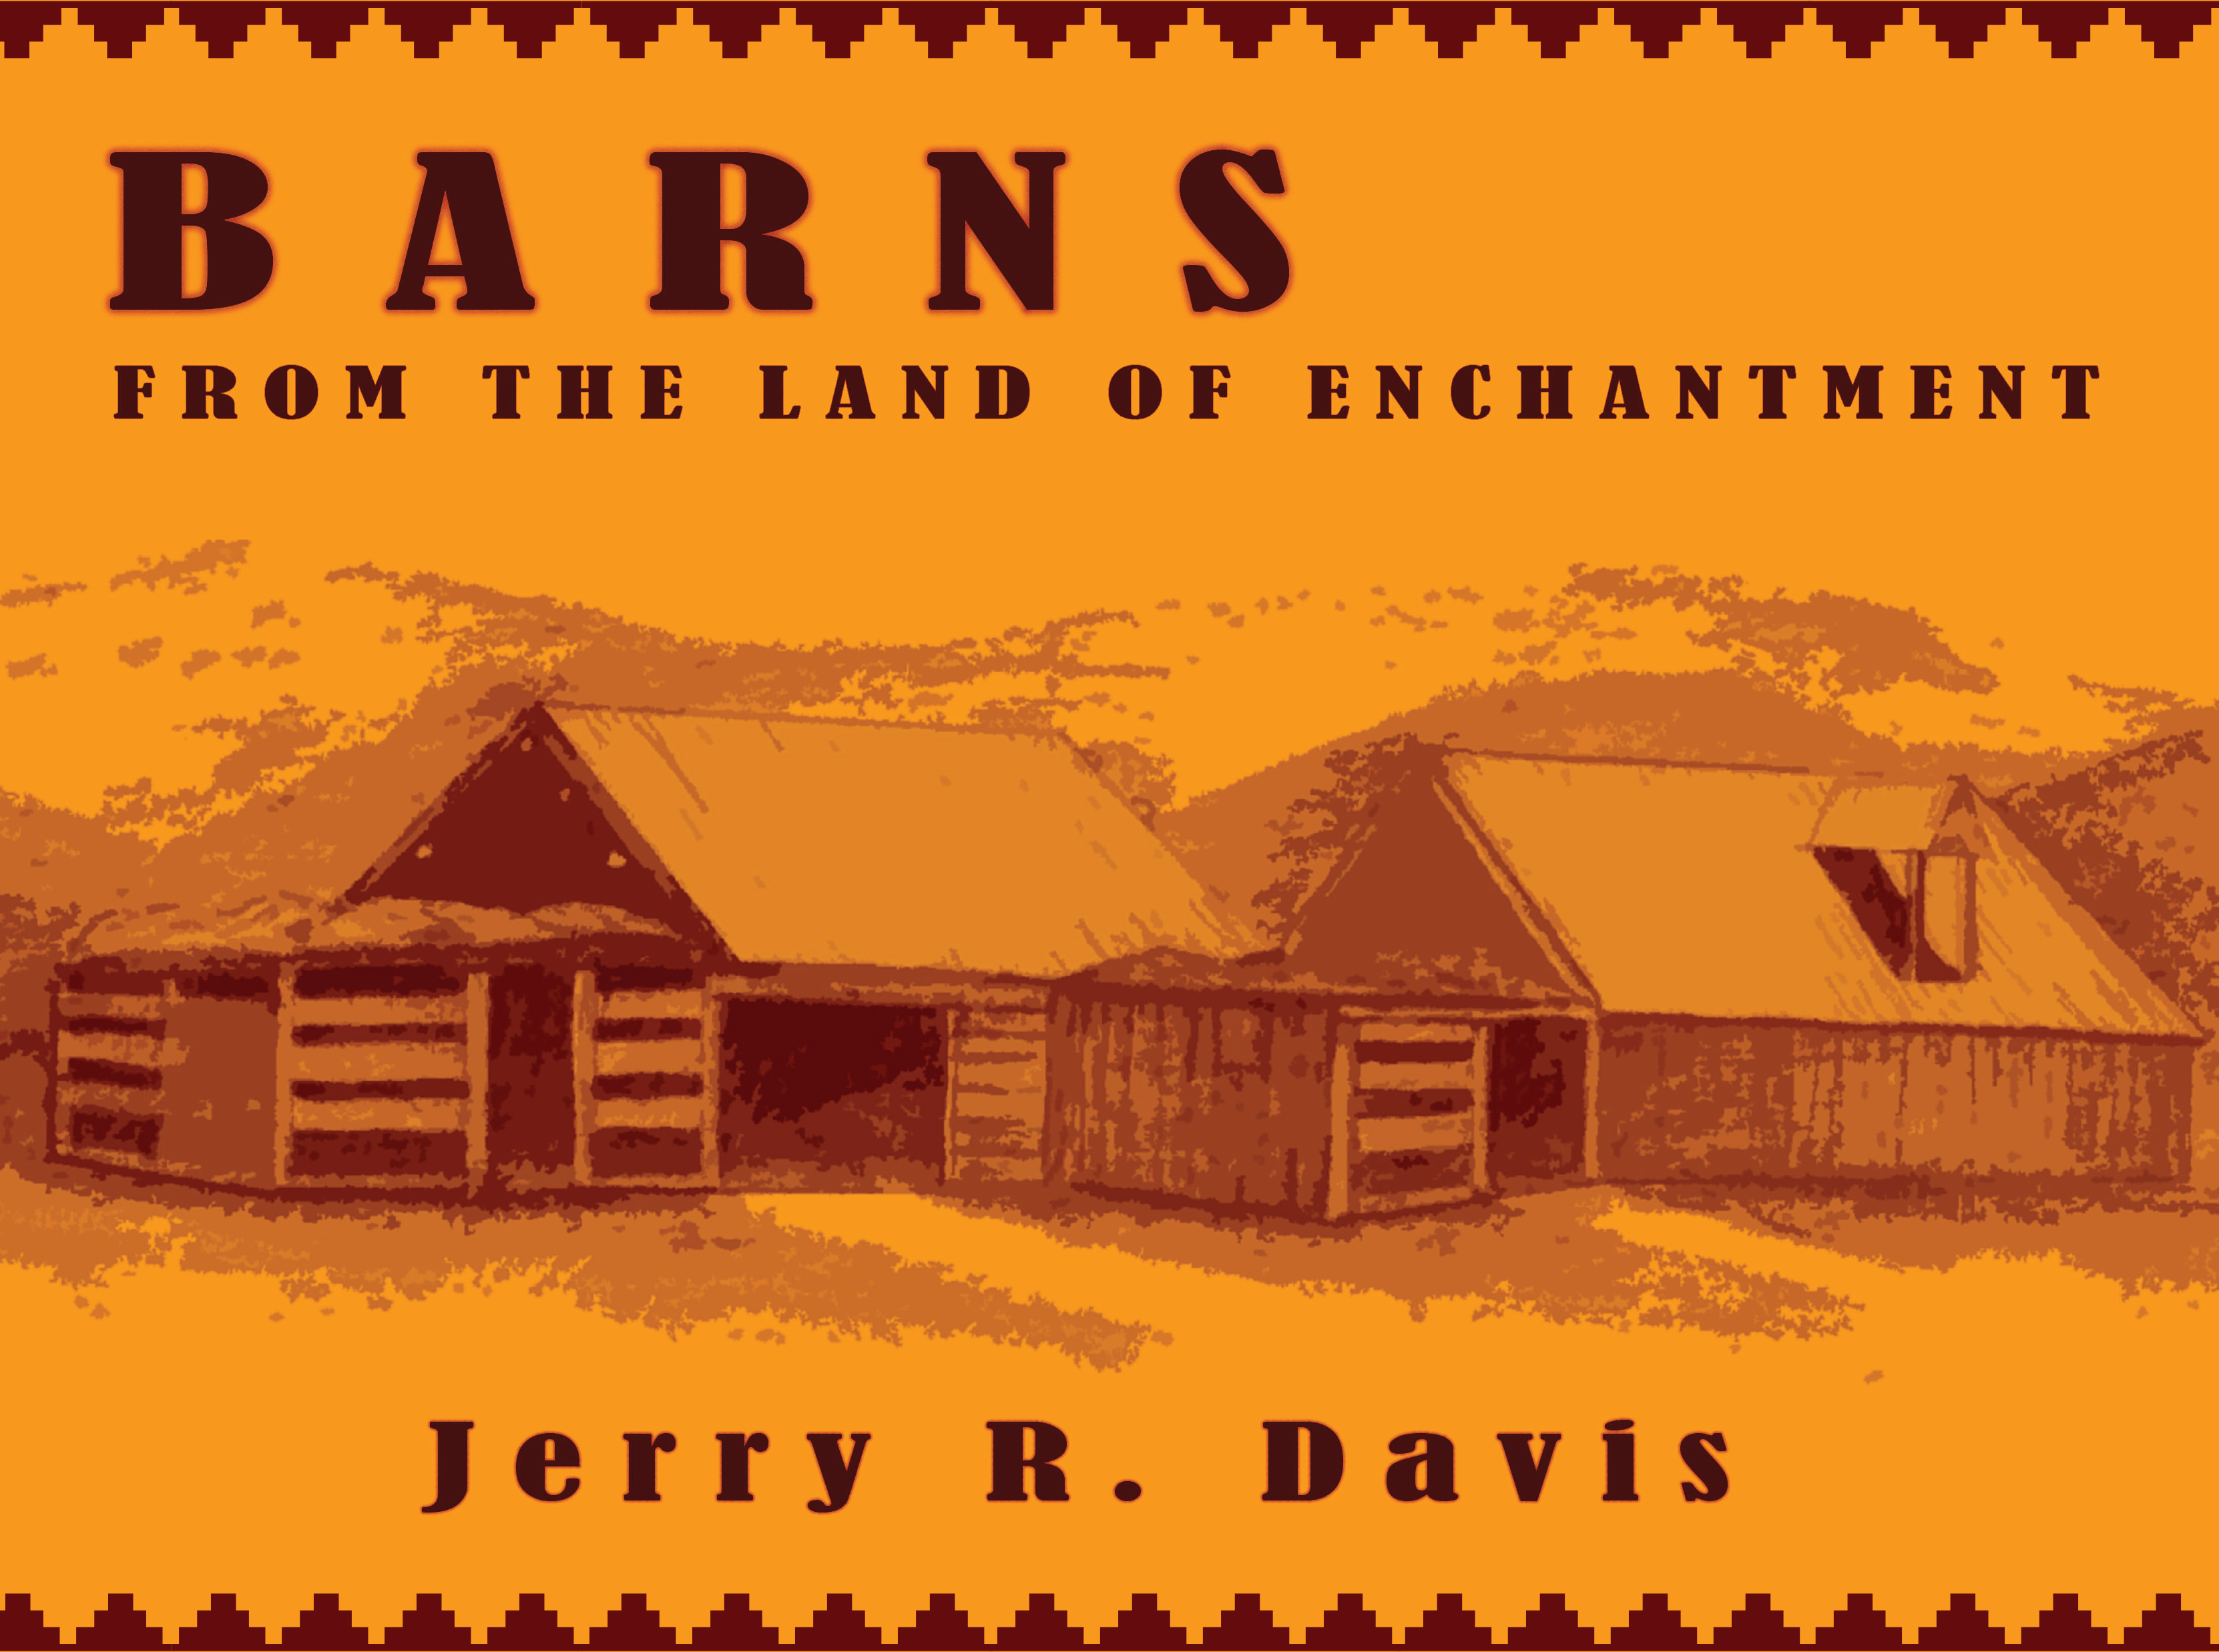 Barns from the Land of Enchantment